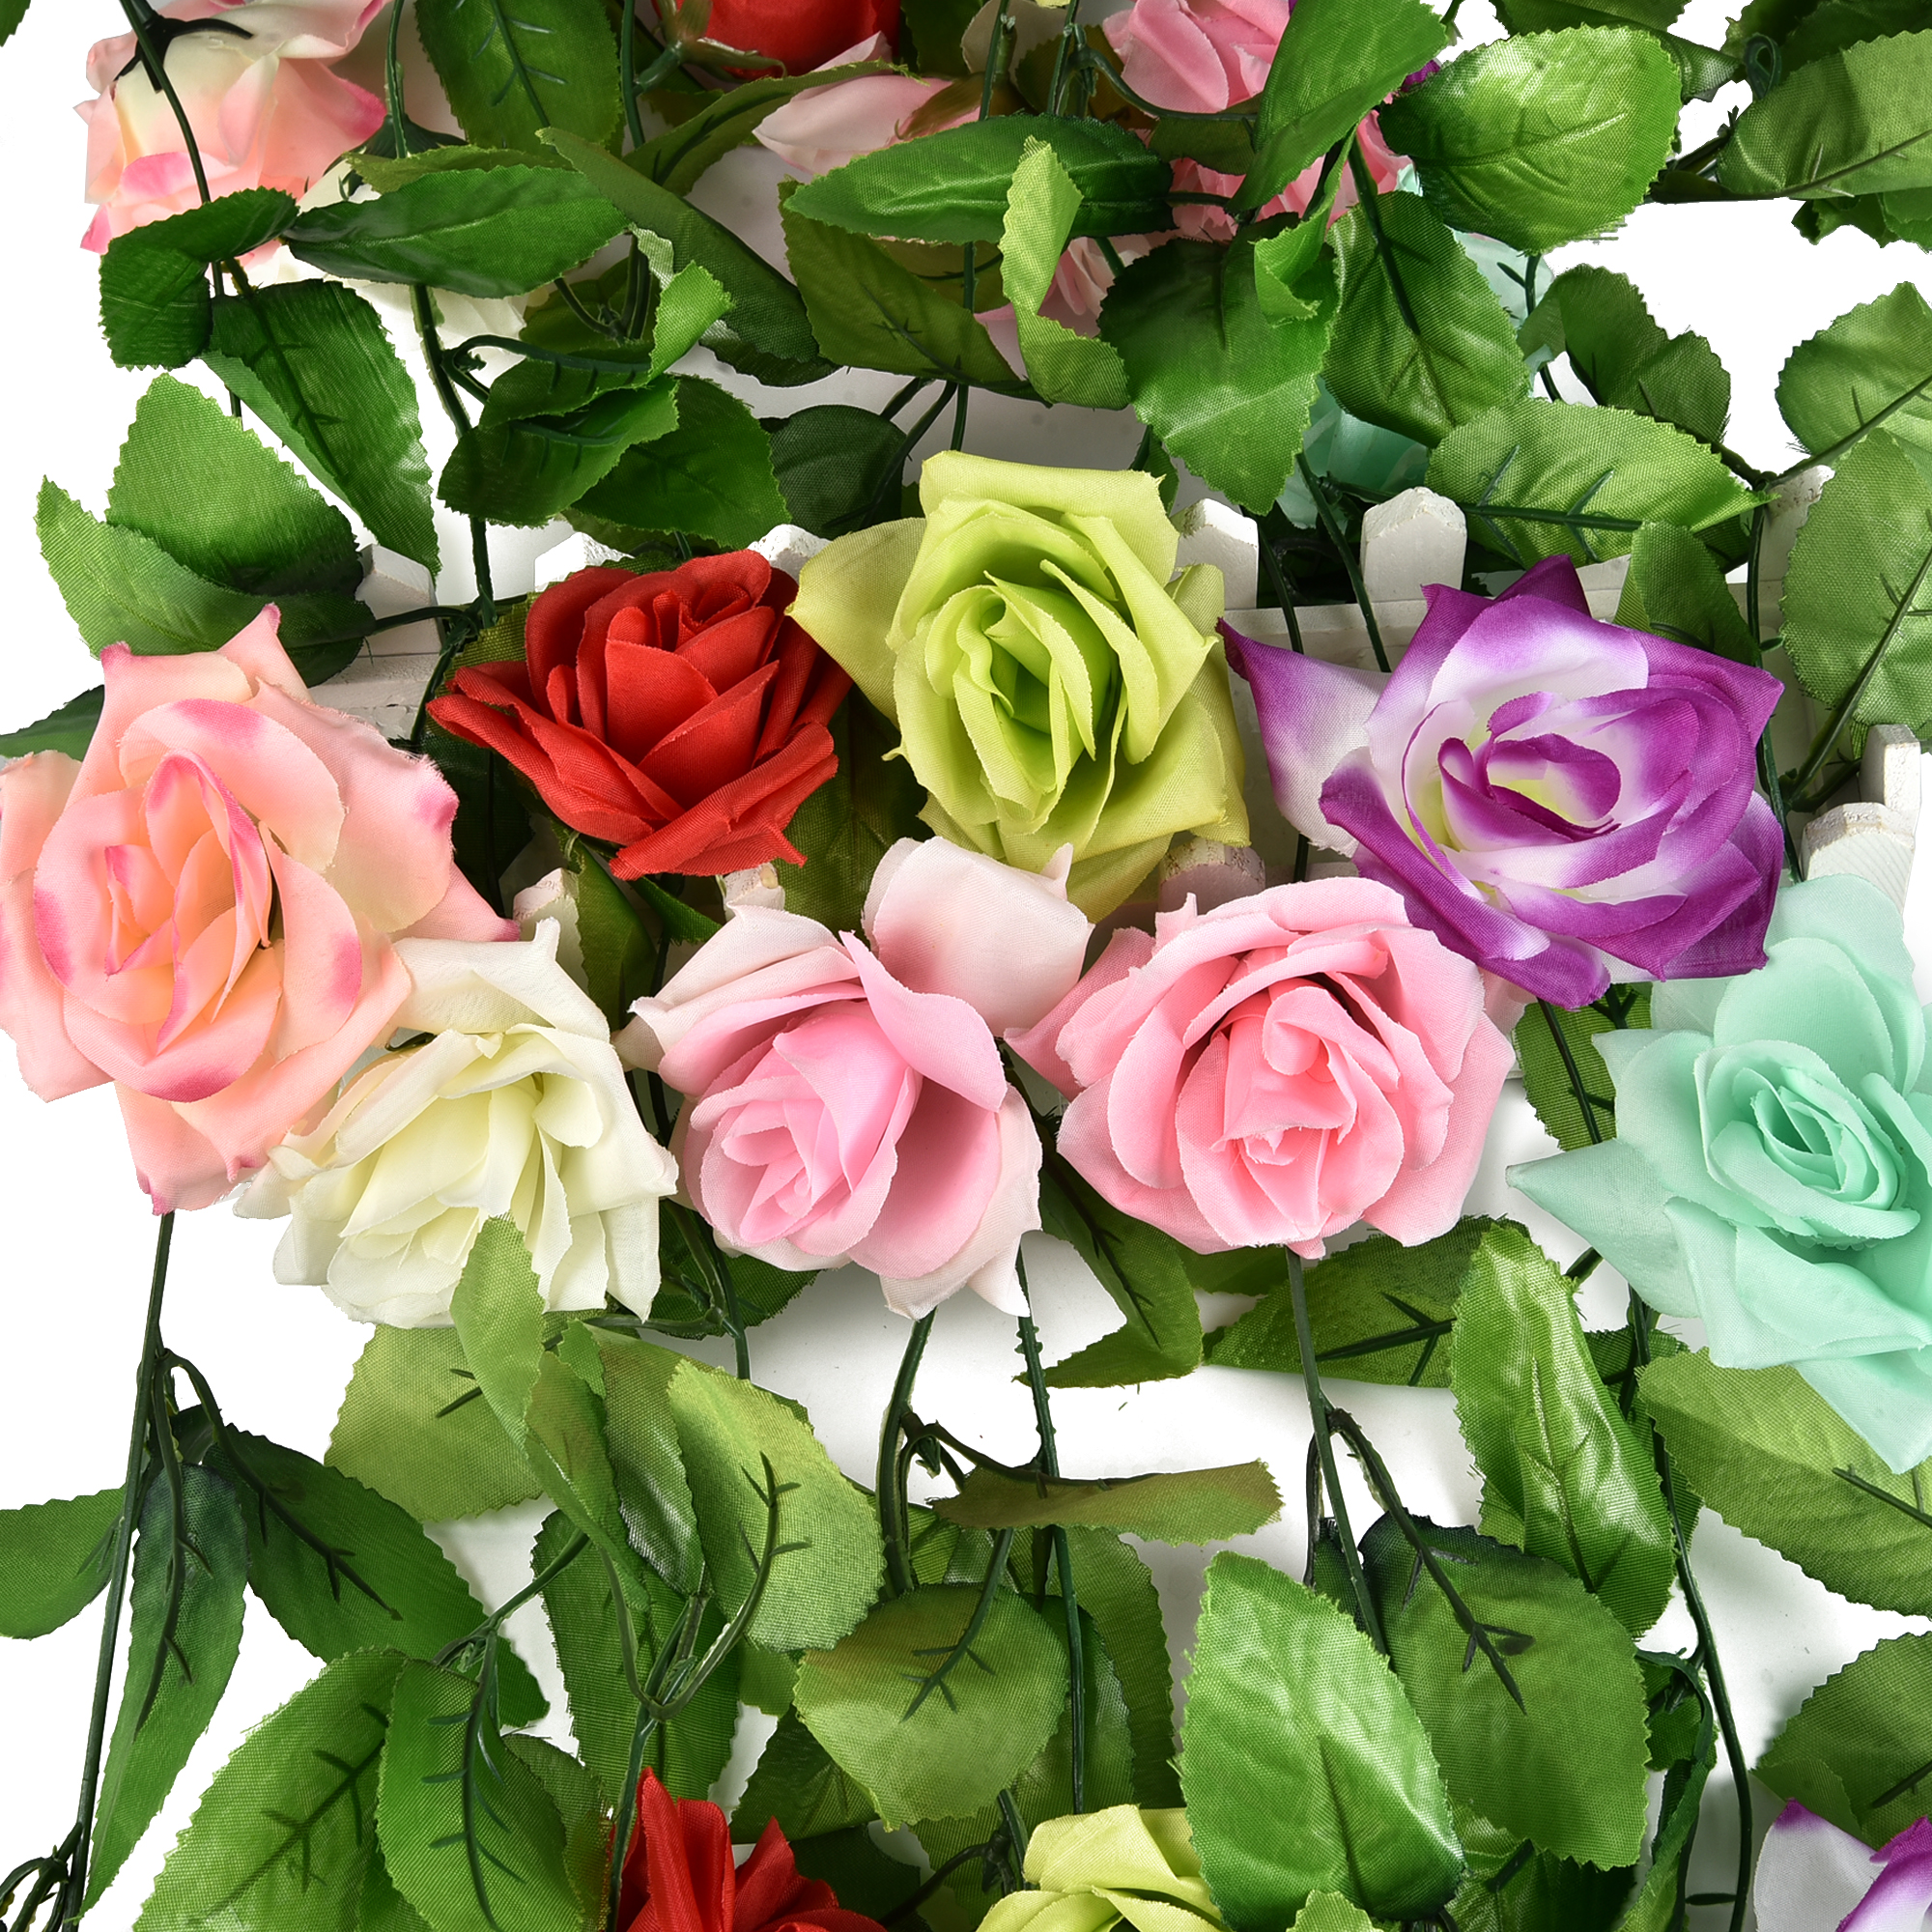 Cuh Artificial Rose Flower Garland Silk Vine For Home Wedding Garden Party Decoration